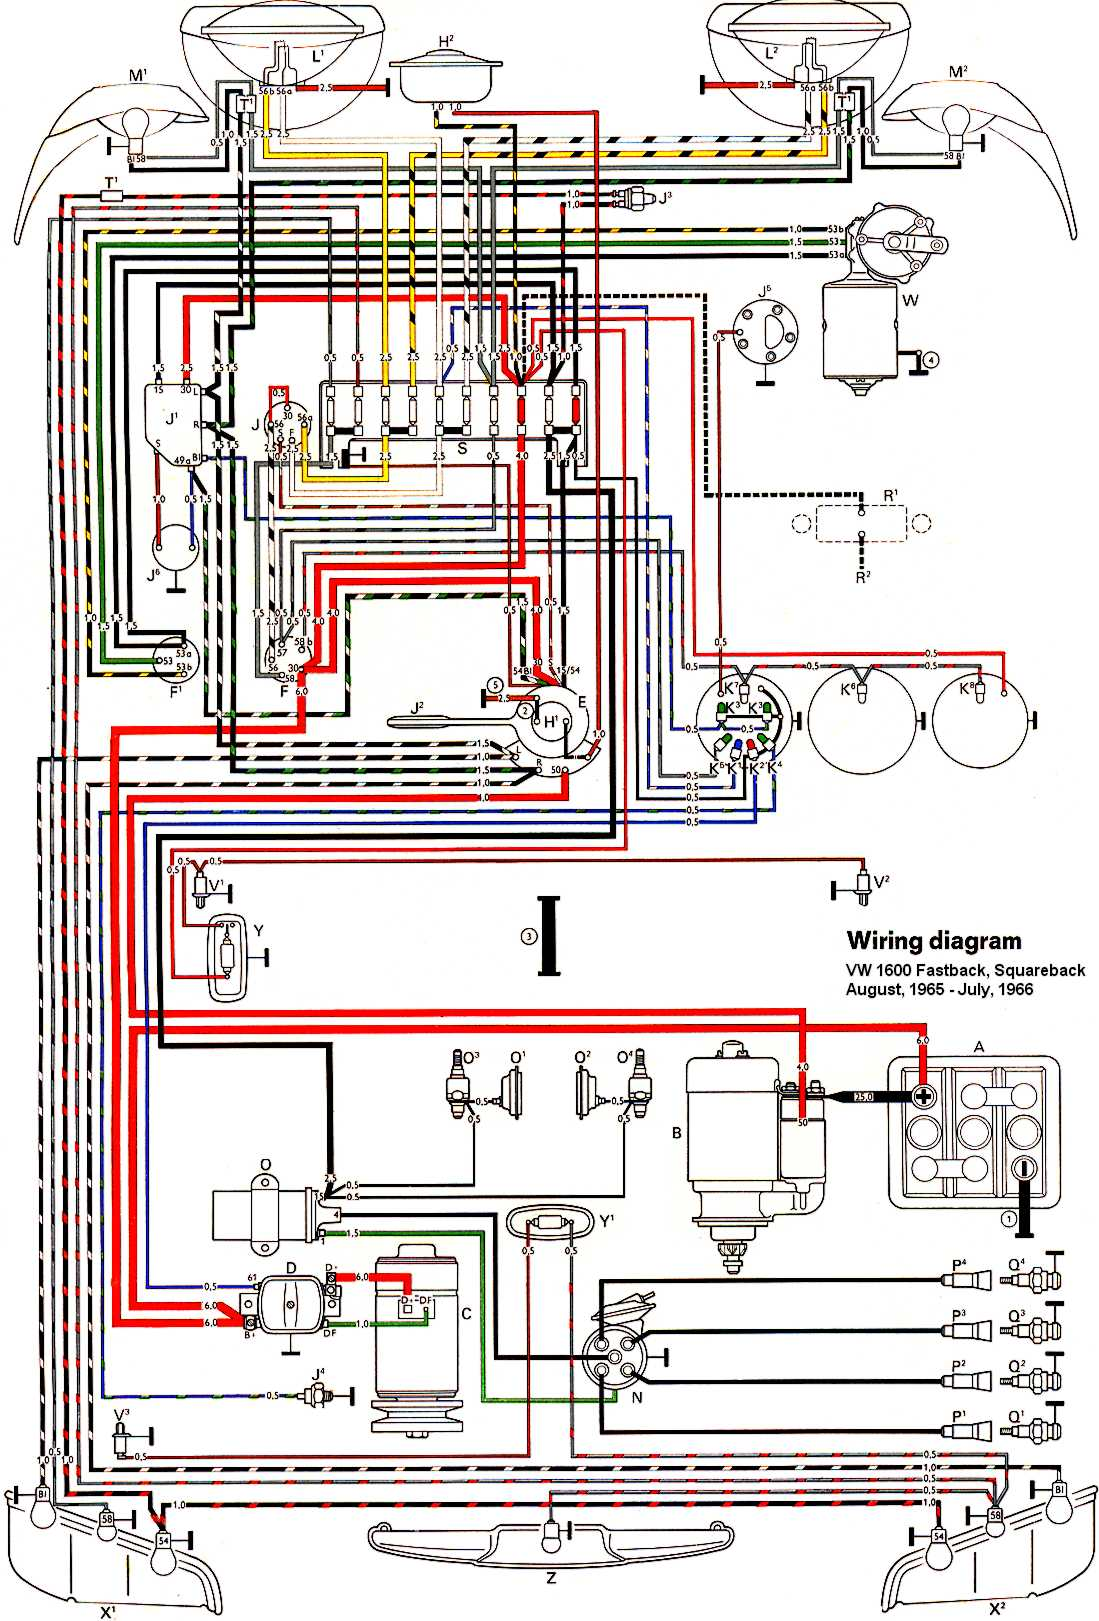 thesamba com type 3 wiring diagrams rh thesamba com 1964 VW Headlight  Switch Wiring VW Bug Coil Wiring